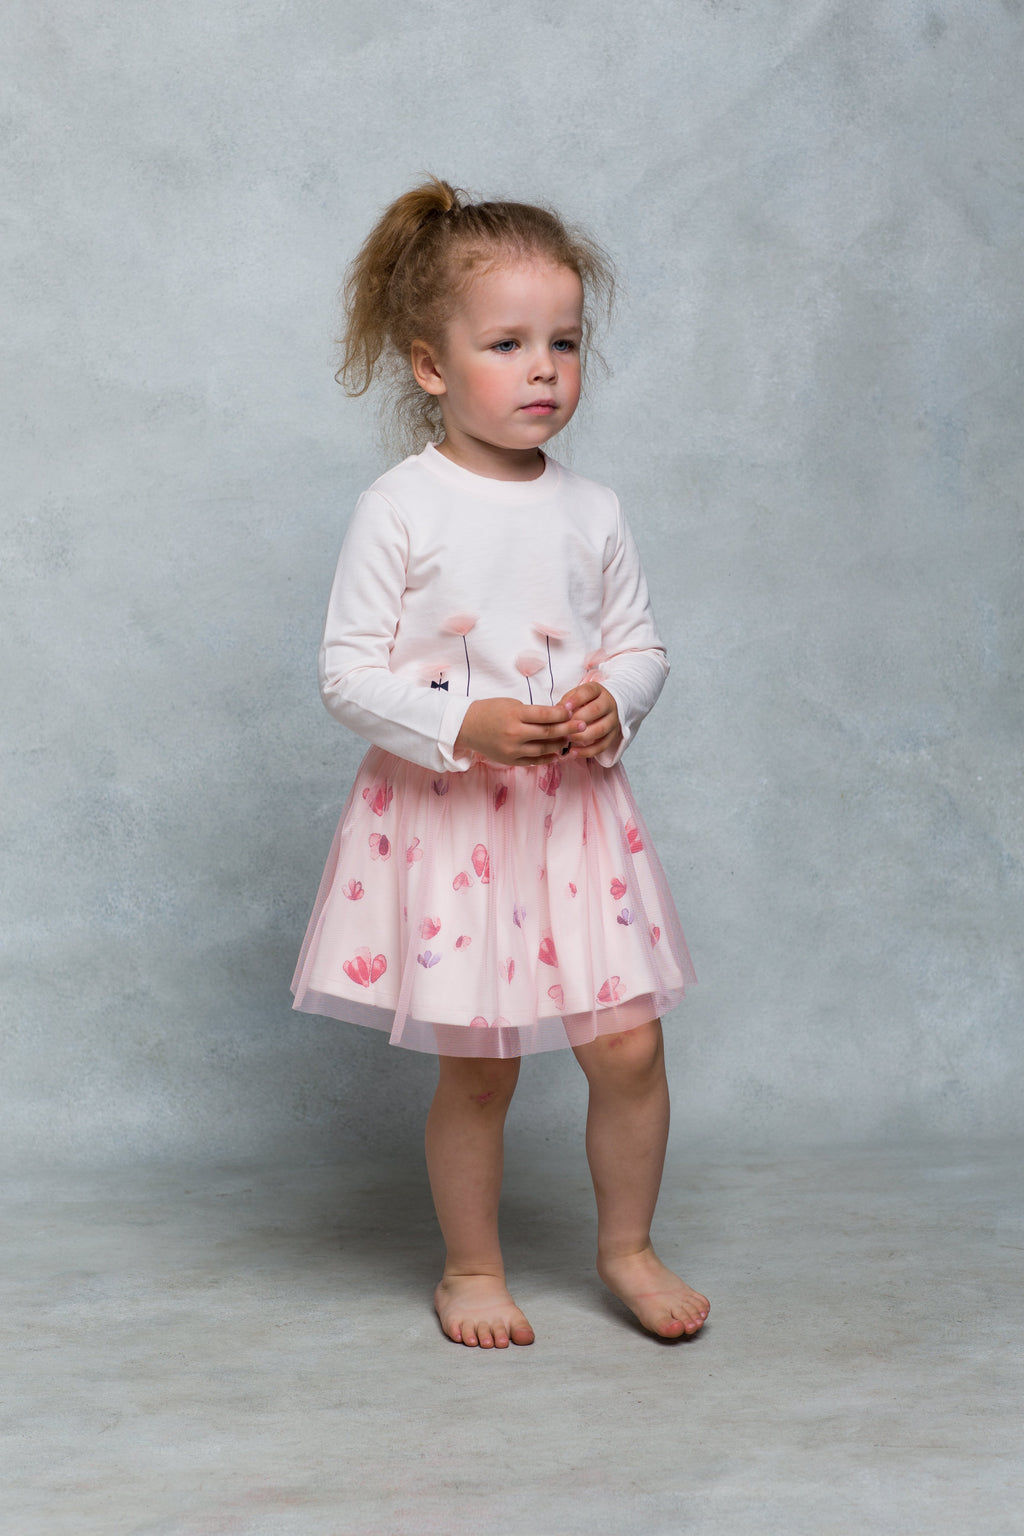 Tall Flowers Long Sleeve Pink Tee with Tulle Petals - 9 months to 4 years - Stylemykid.com